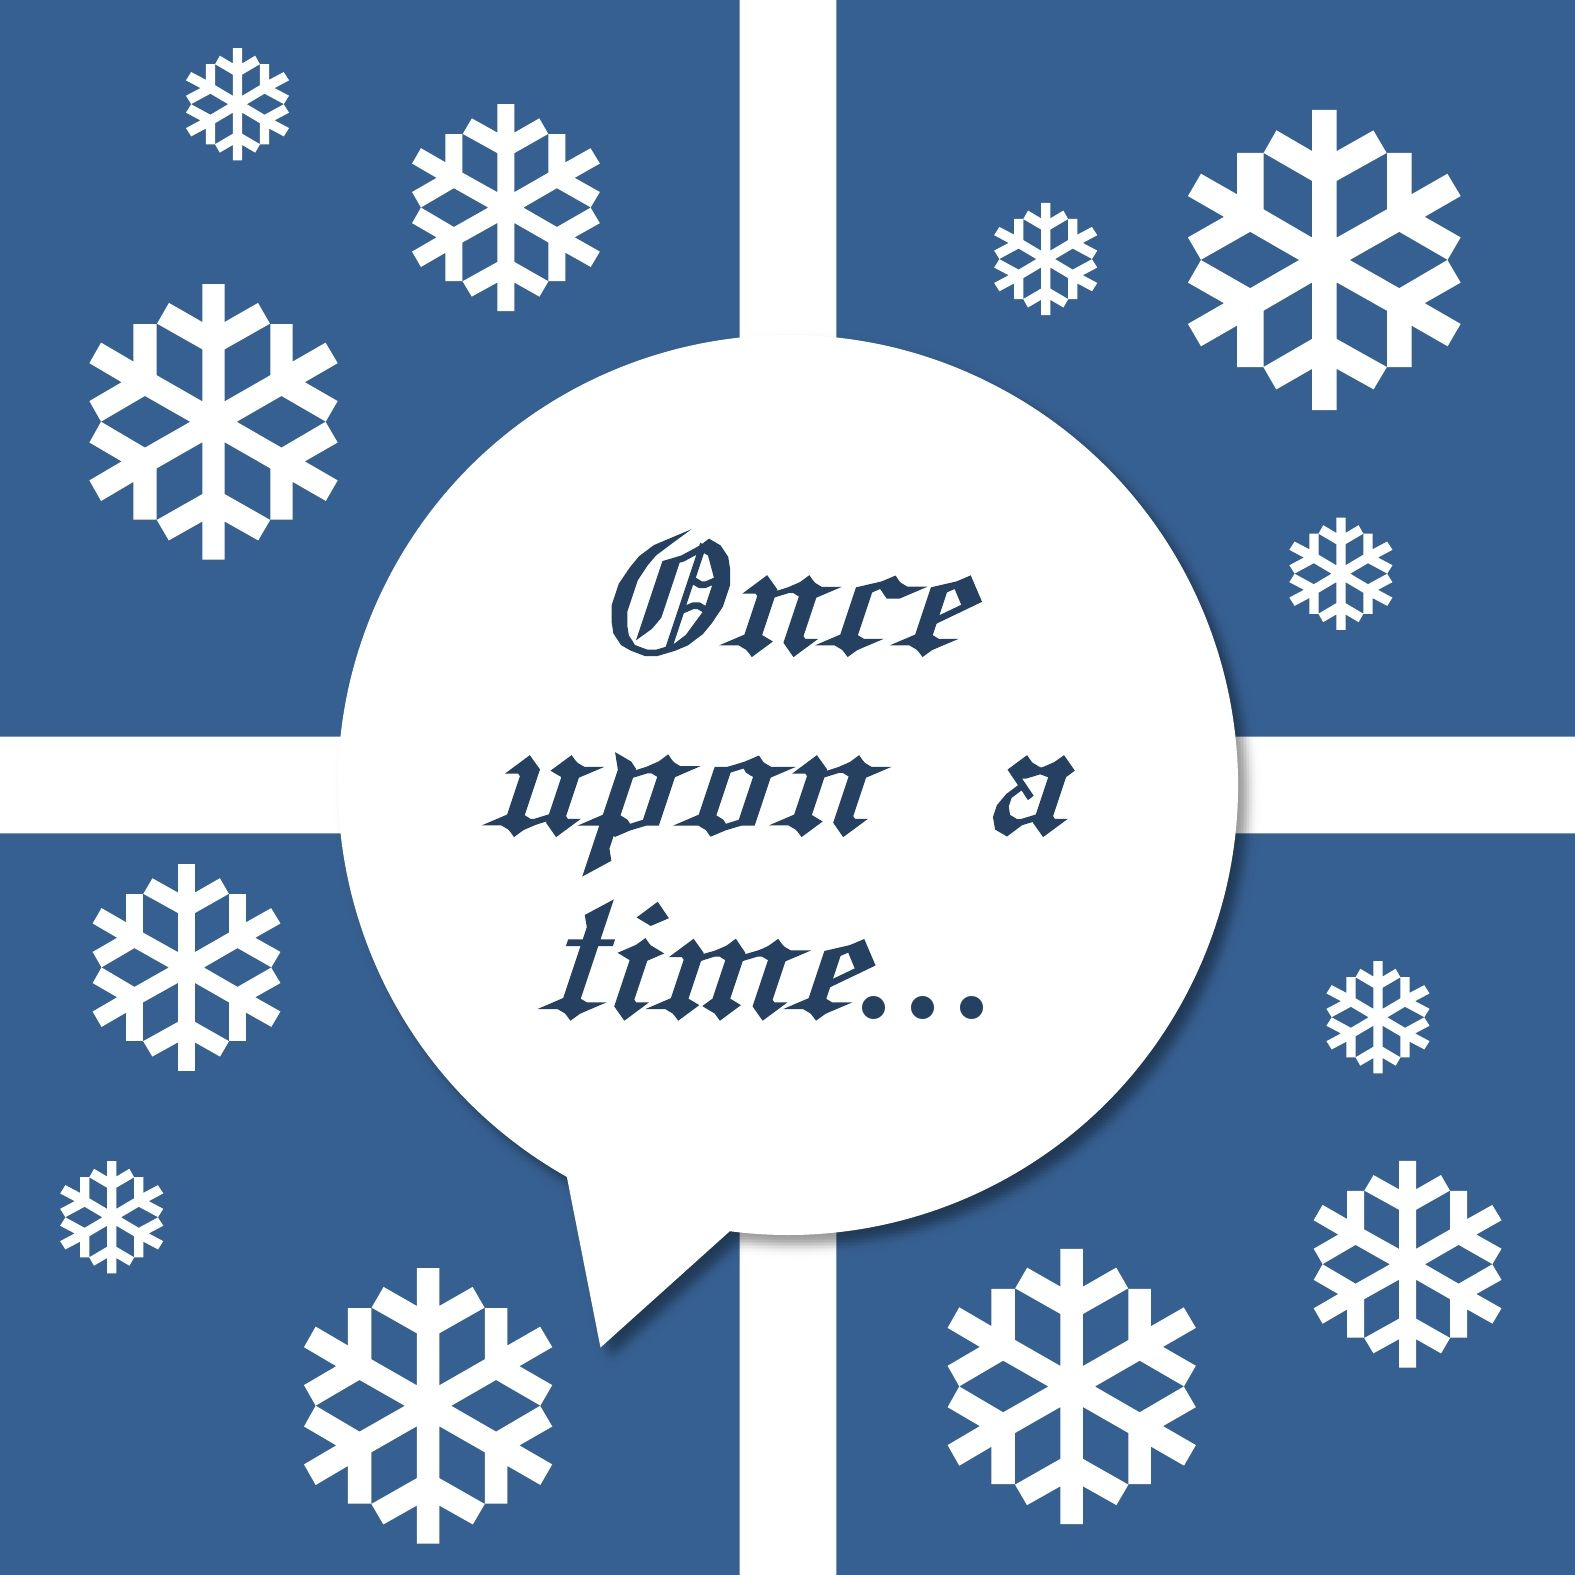 Snowflake Love Quotes Winter Reading Quotes  Book Fair  Winter Theme  Pinterest